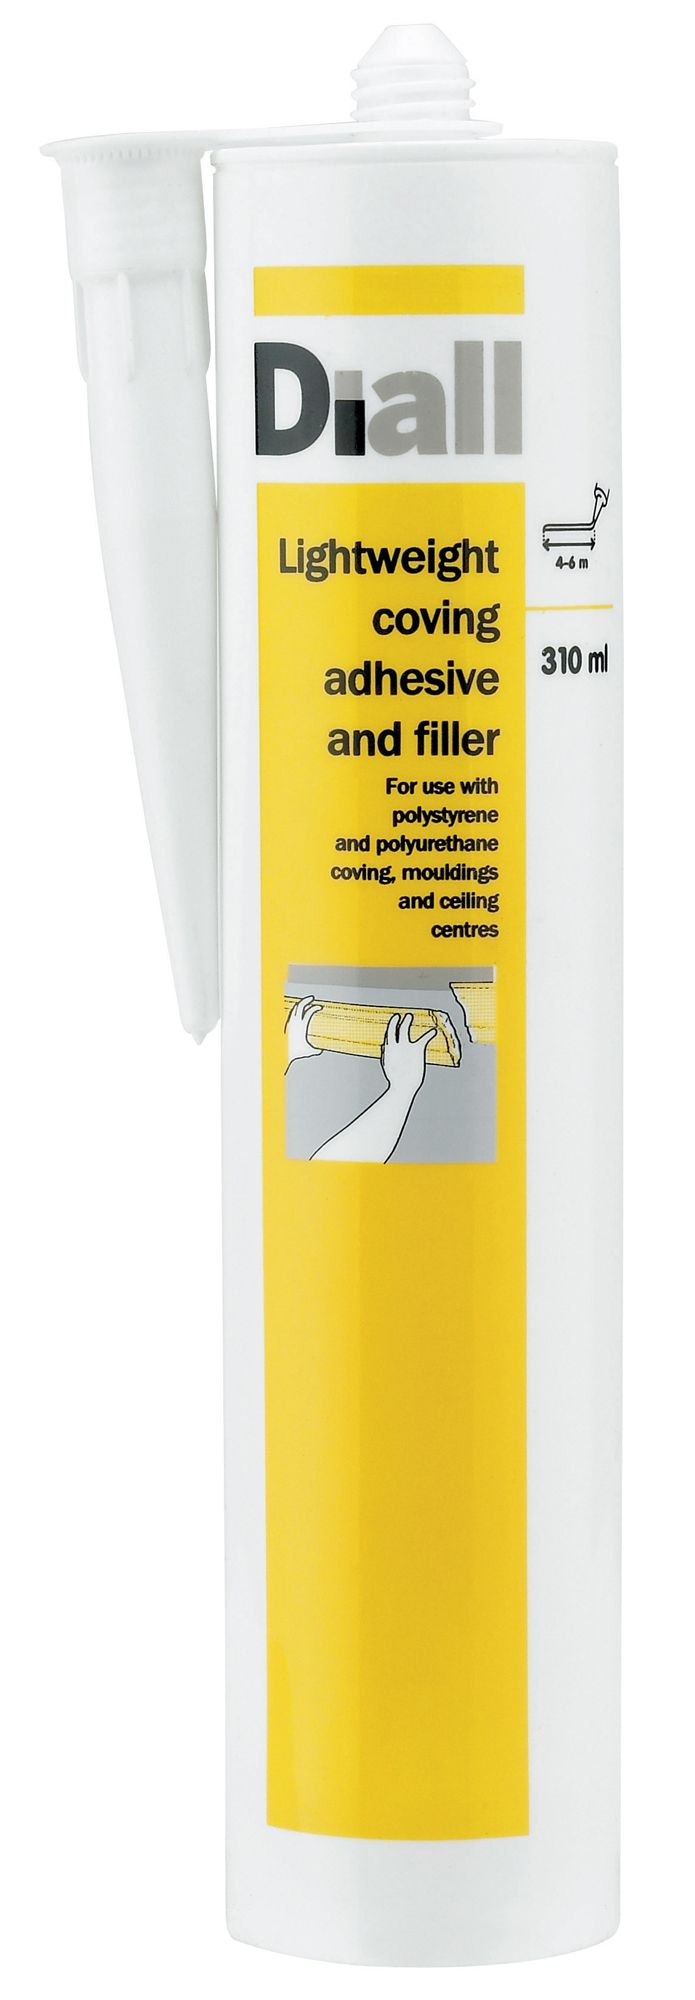 diall coving adhesive filler 310ml departments diy. Black Bedroom Furniture Sets. Home Design Ideas